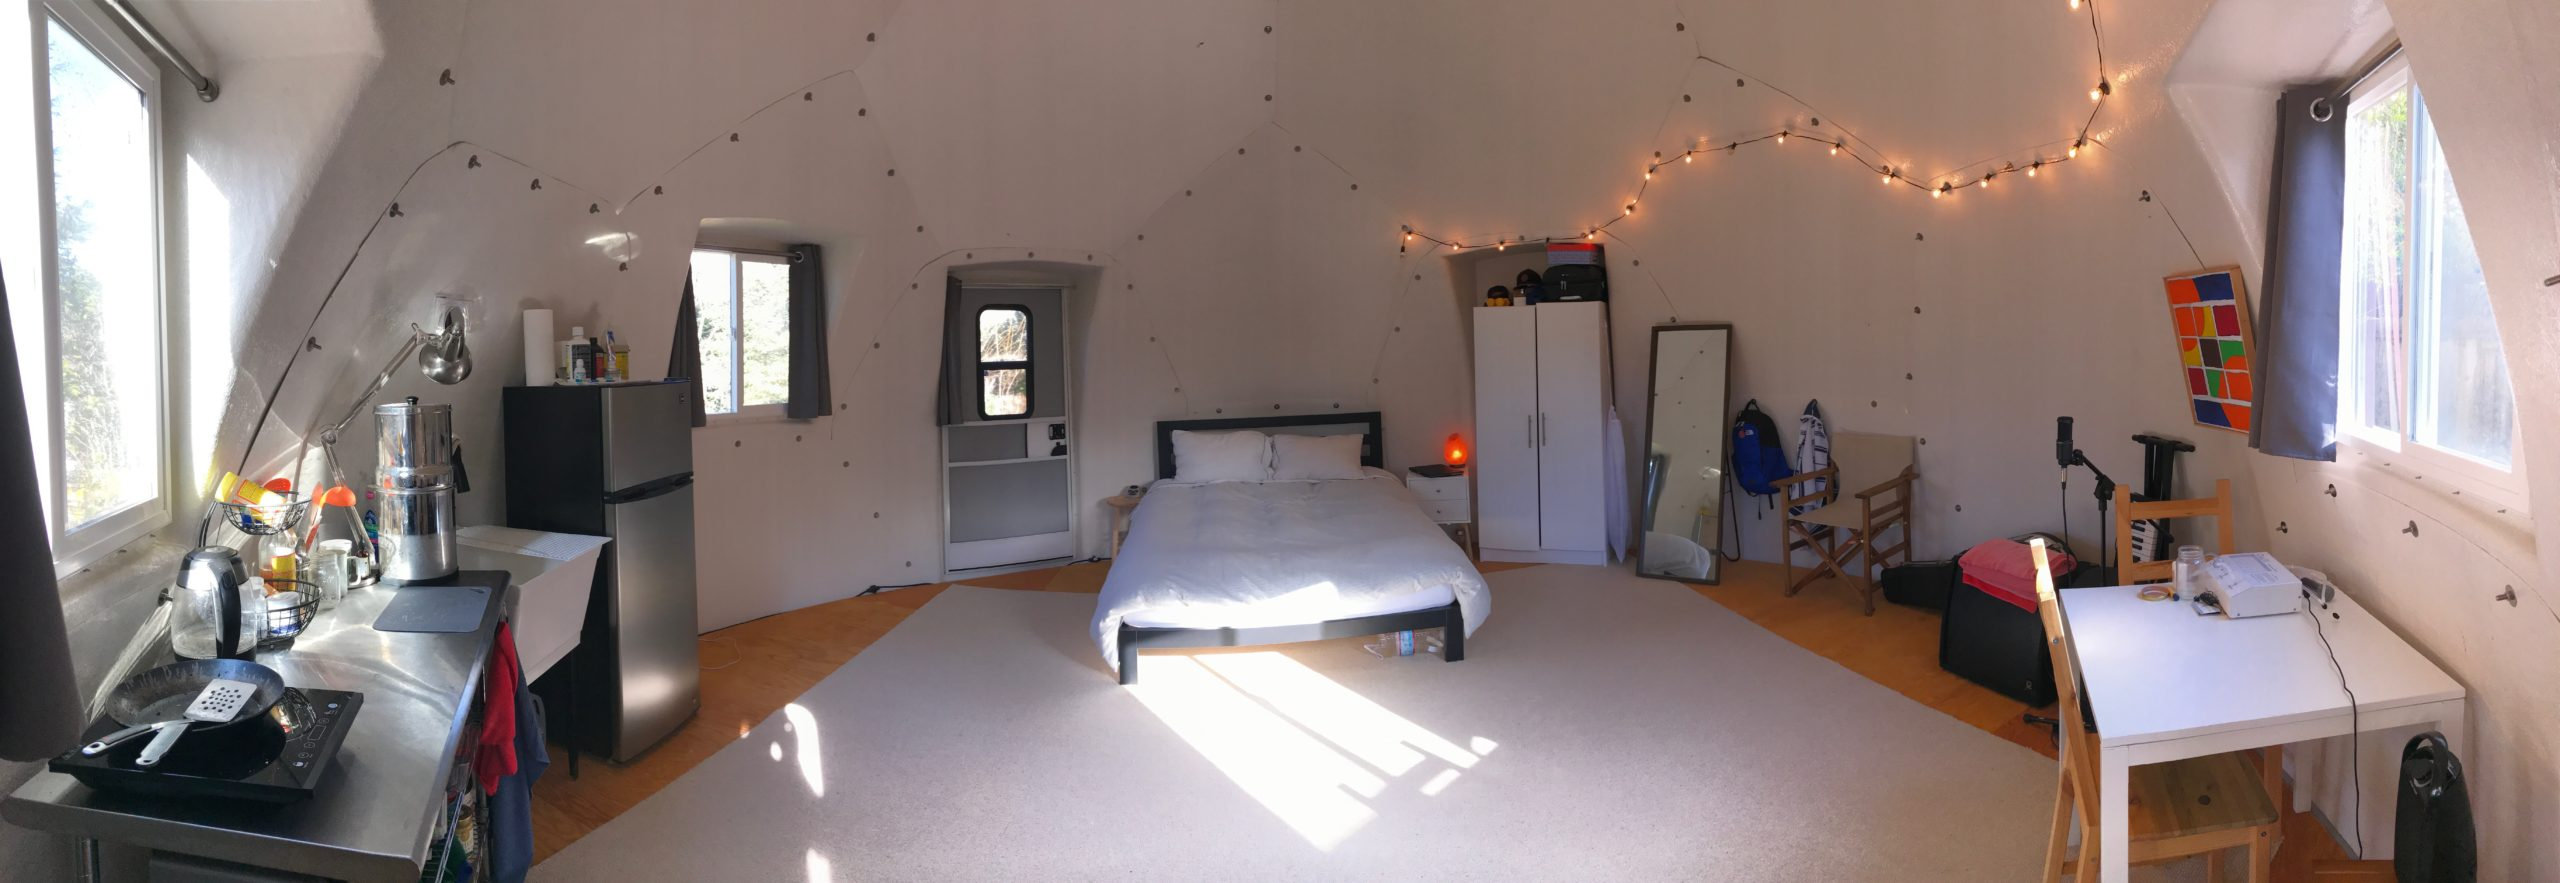 Decorated and furnished tiny house or safety shelter from InterShelter Inc